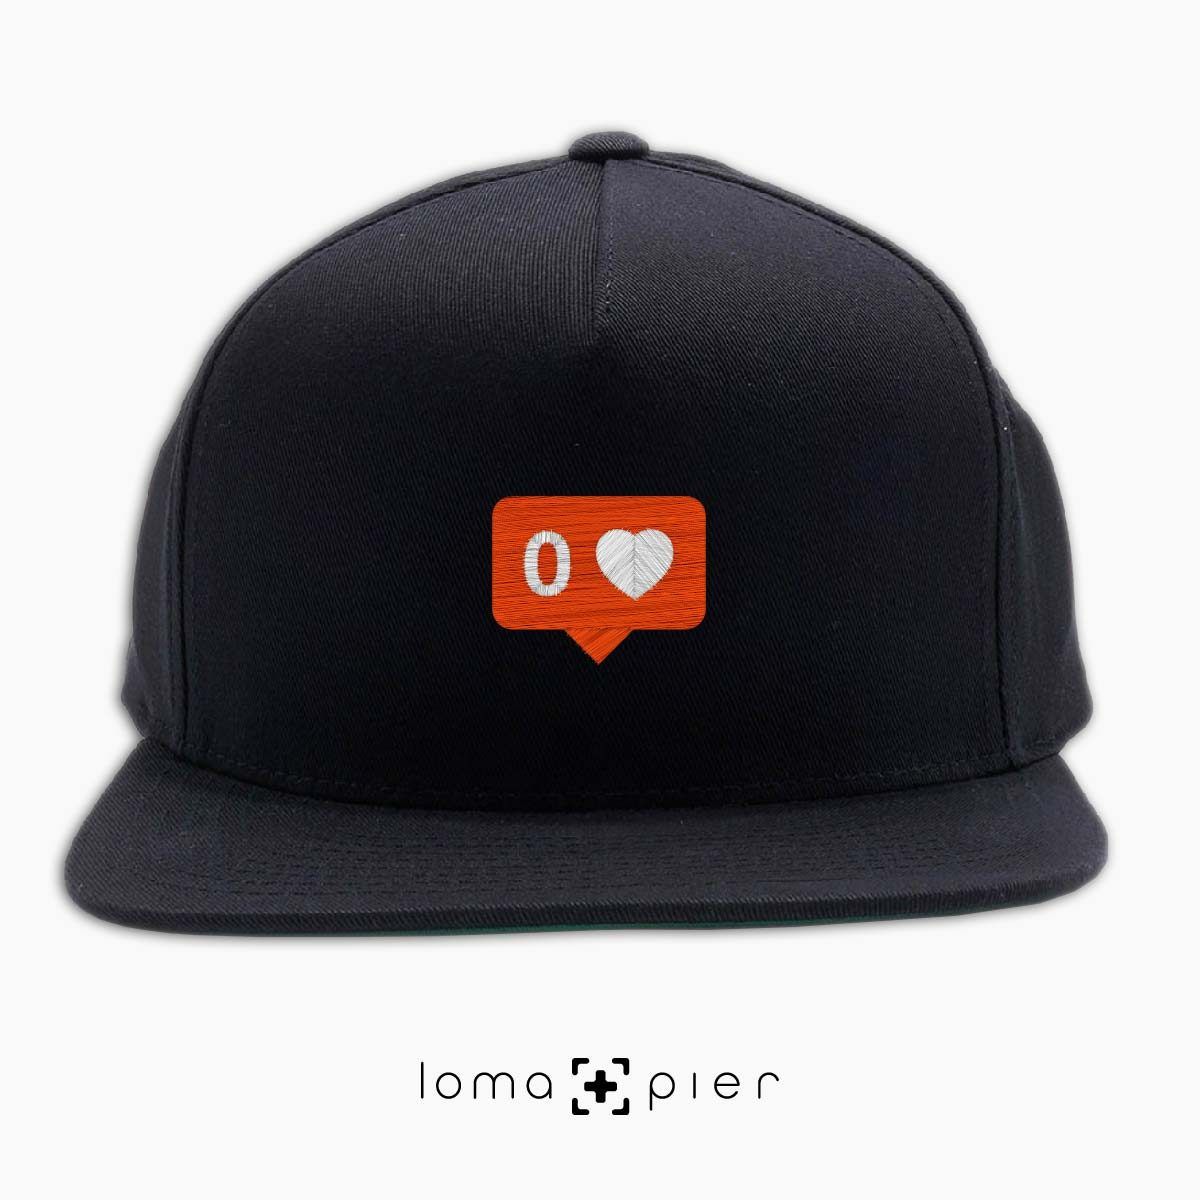 NO LOVE snapback hat in black by lomapier hat store